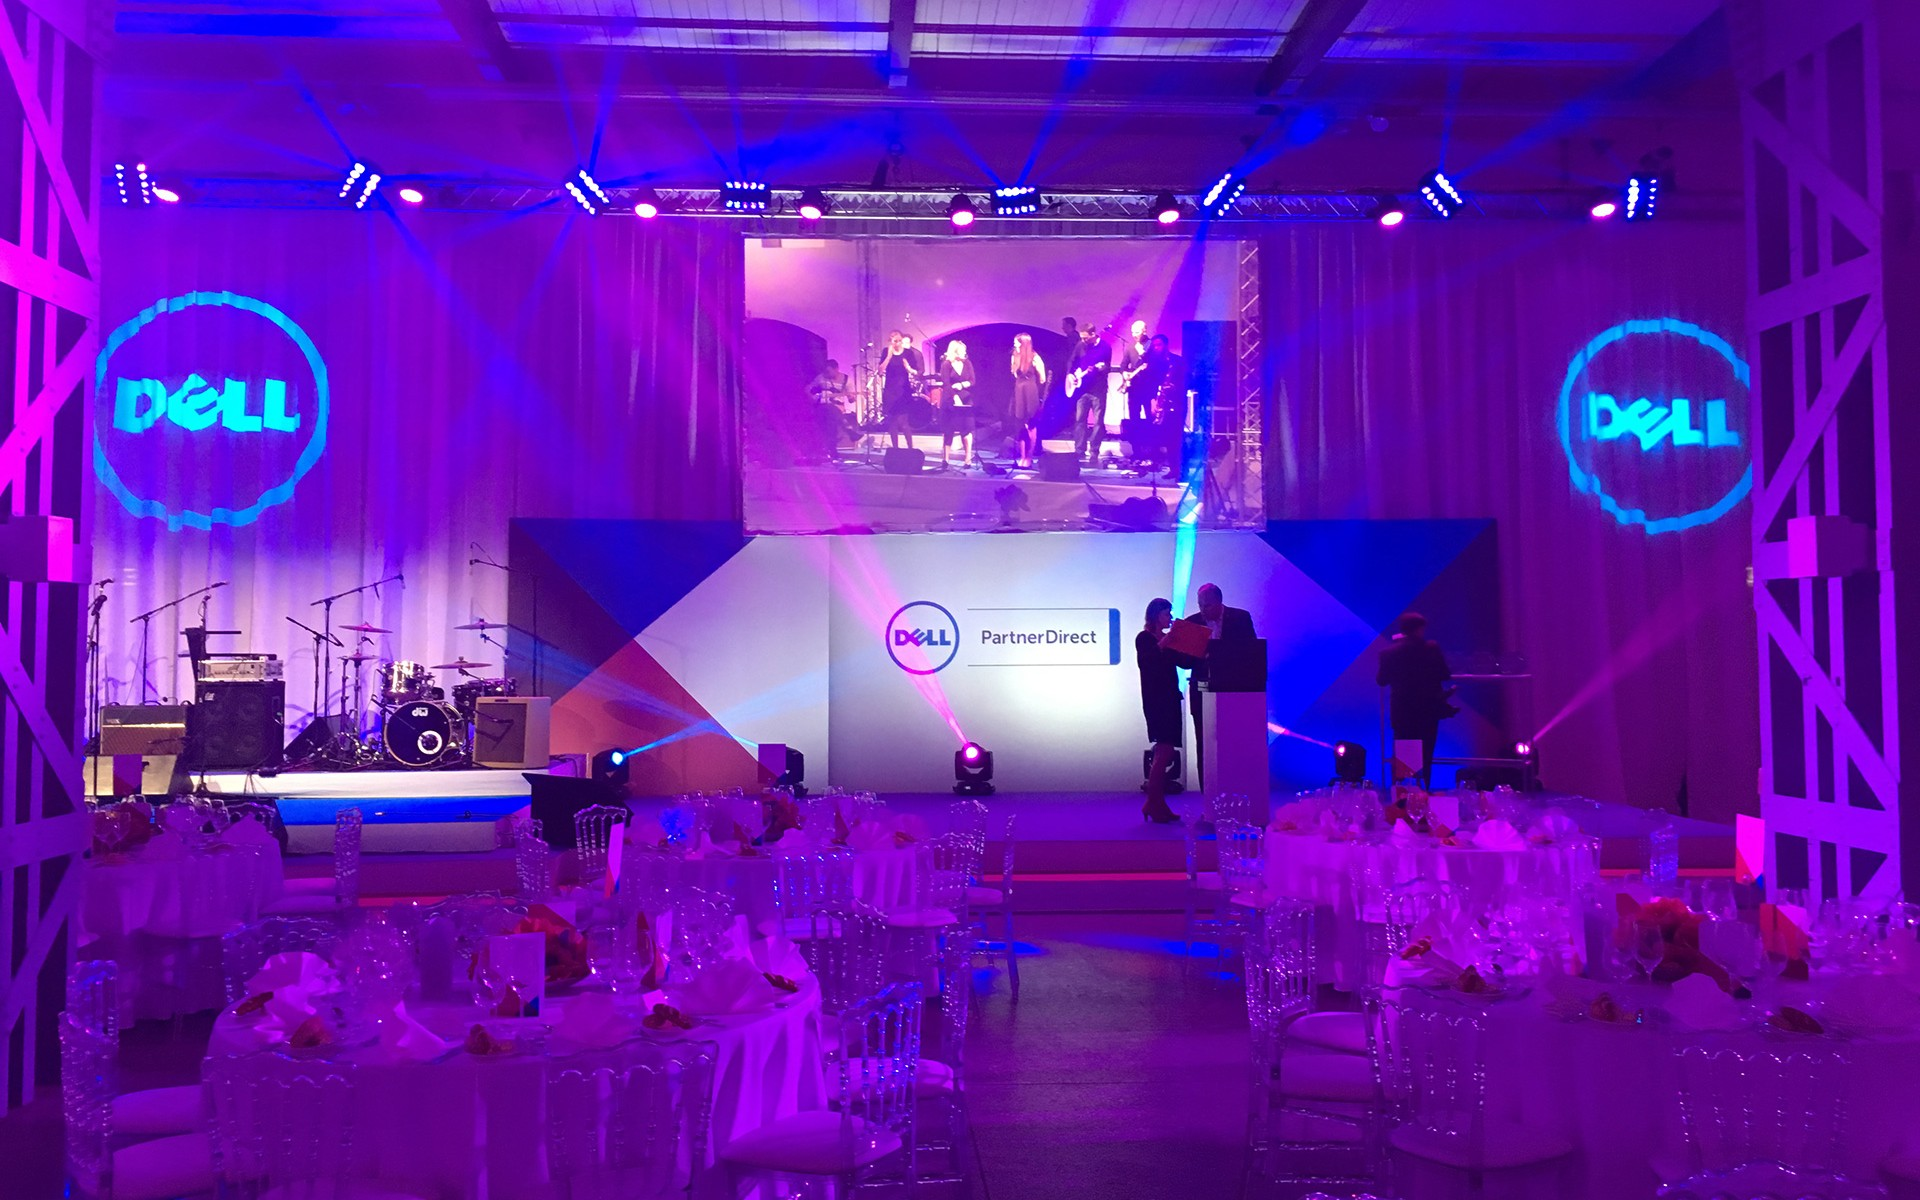 Dell-convention-VIENNES-aucop-Convention & Soirée de Gala DELL-aucop-evenement-convention-deco-sonorisation-eclairage-montage-scene-mobilier-softedgefrance-europe-audiovisuel-soiree-habillage-eclairage-bache-projection